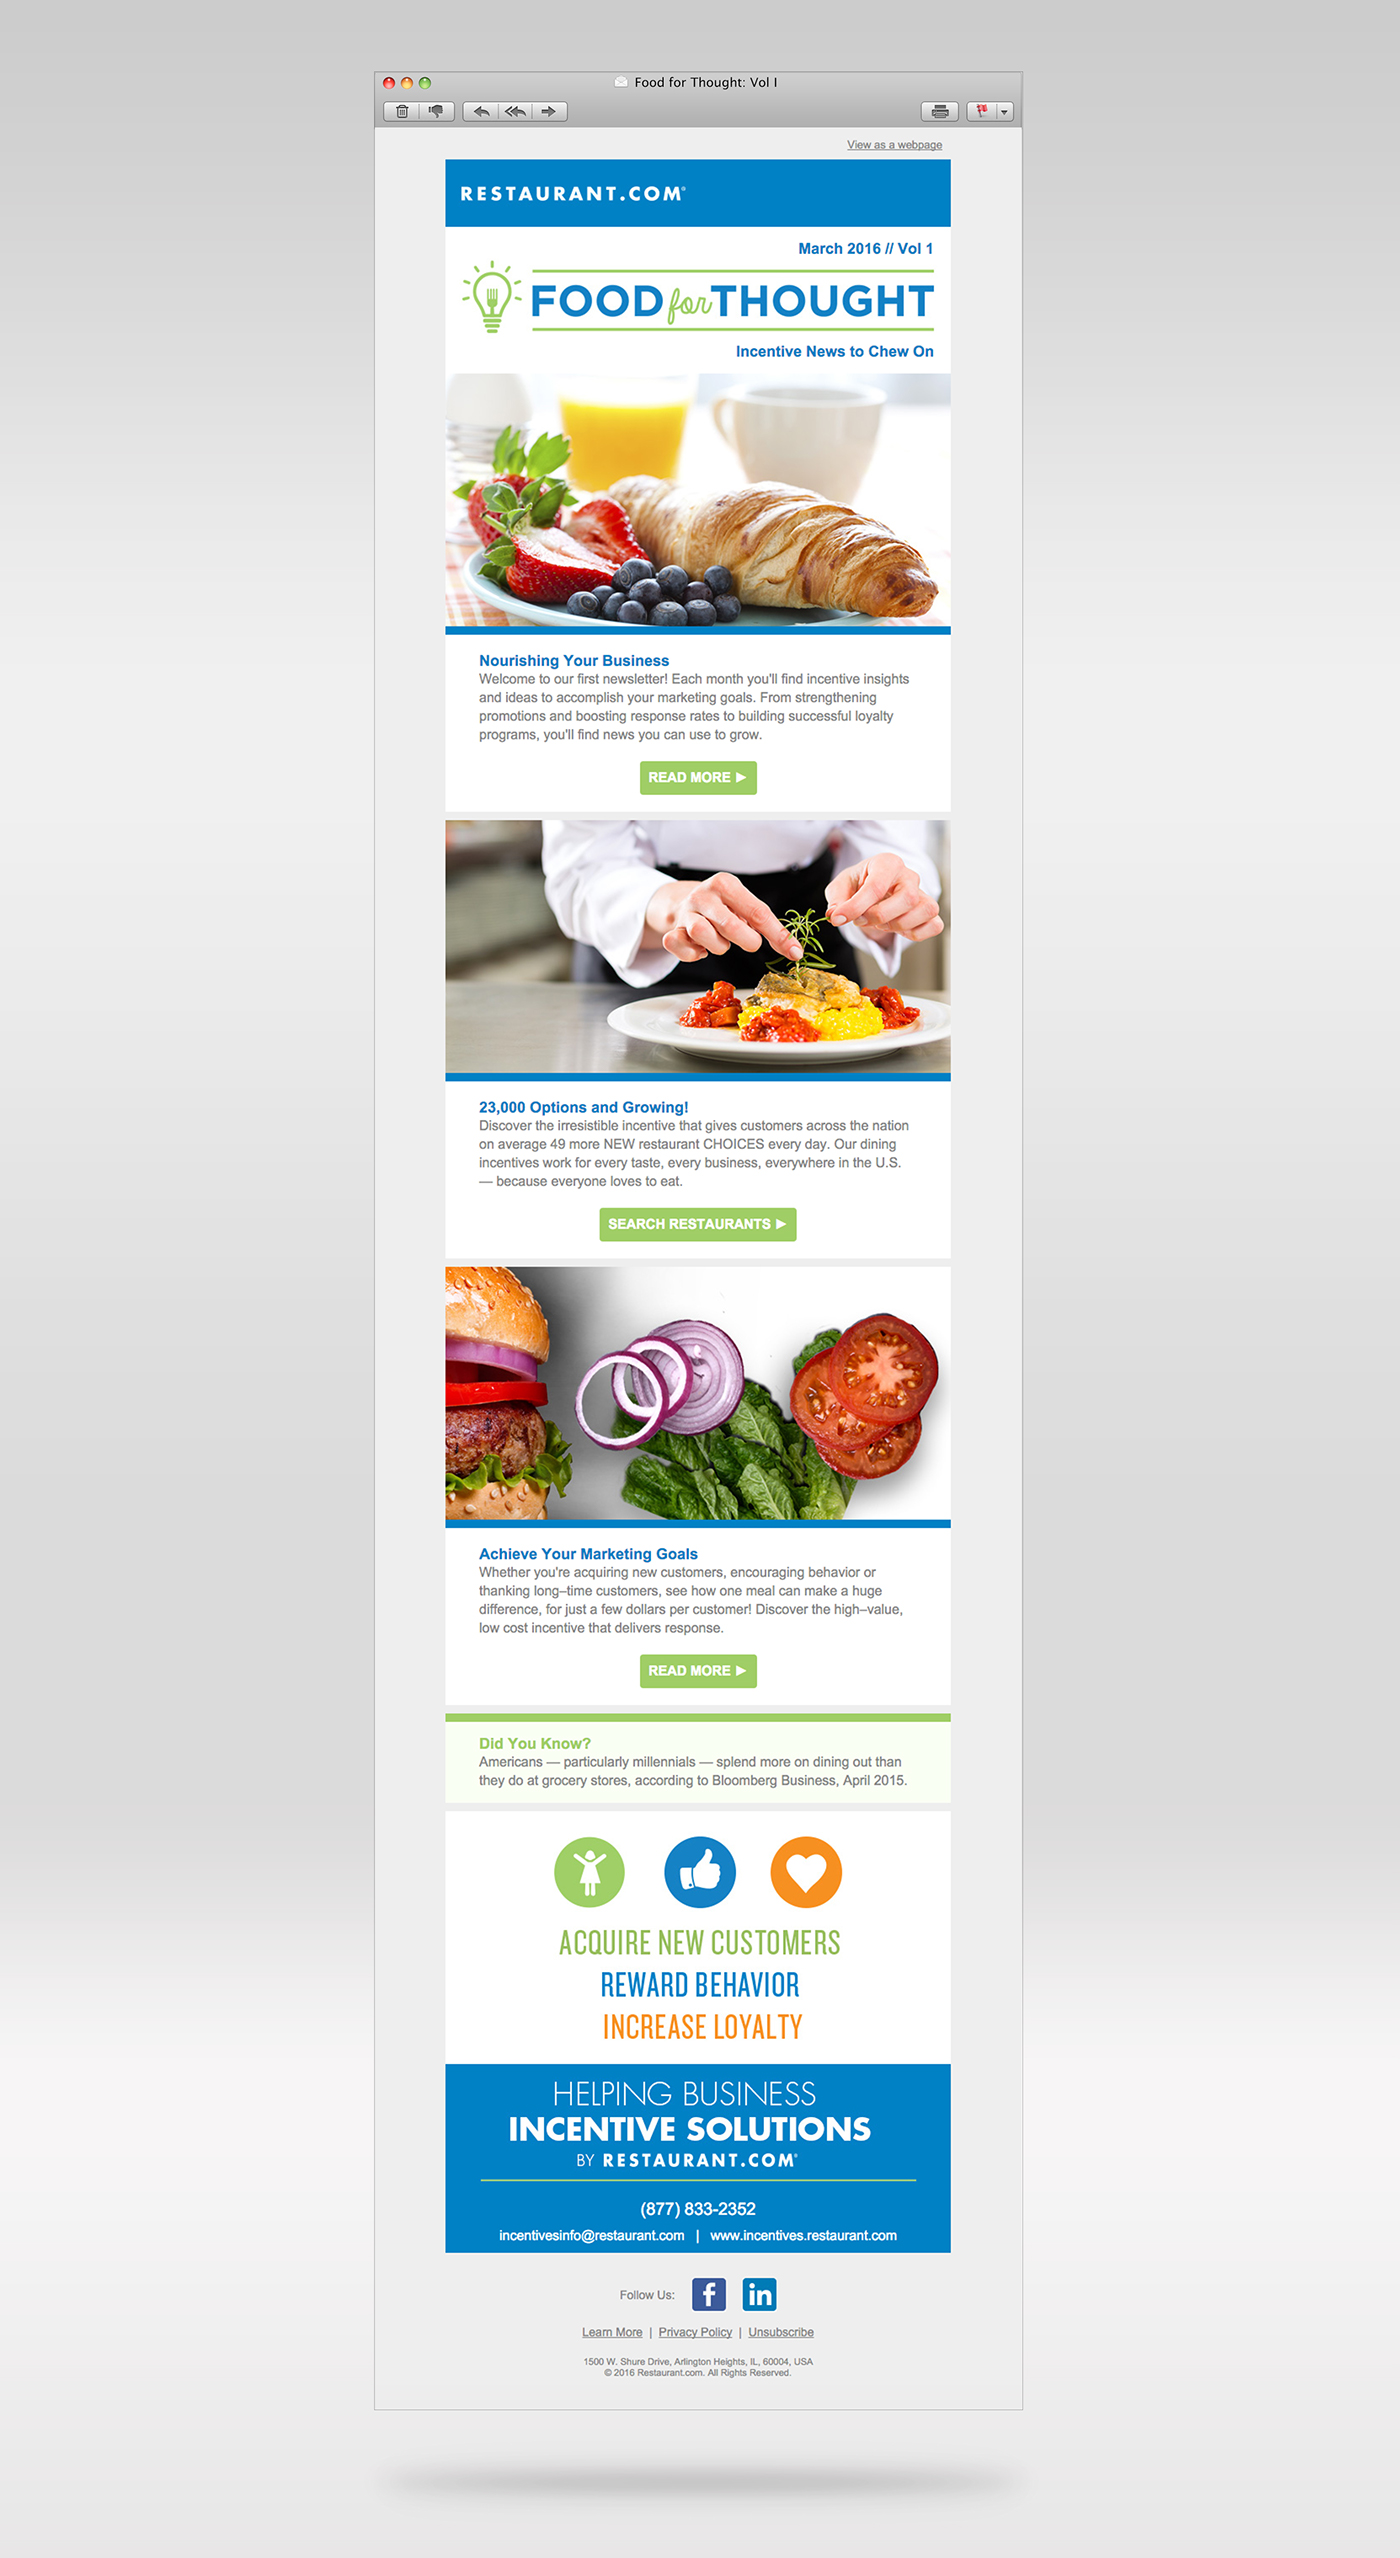 Food for thought b2b newsletter design on behance food for thought newsletter that would suit the overarching brands of restaurant and business incentives by restaurant and designing a forumfinder Image collections